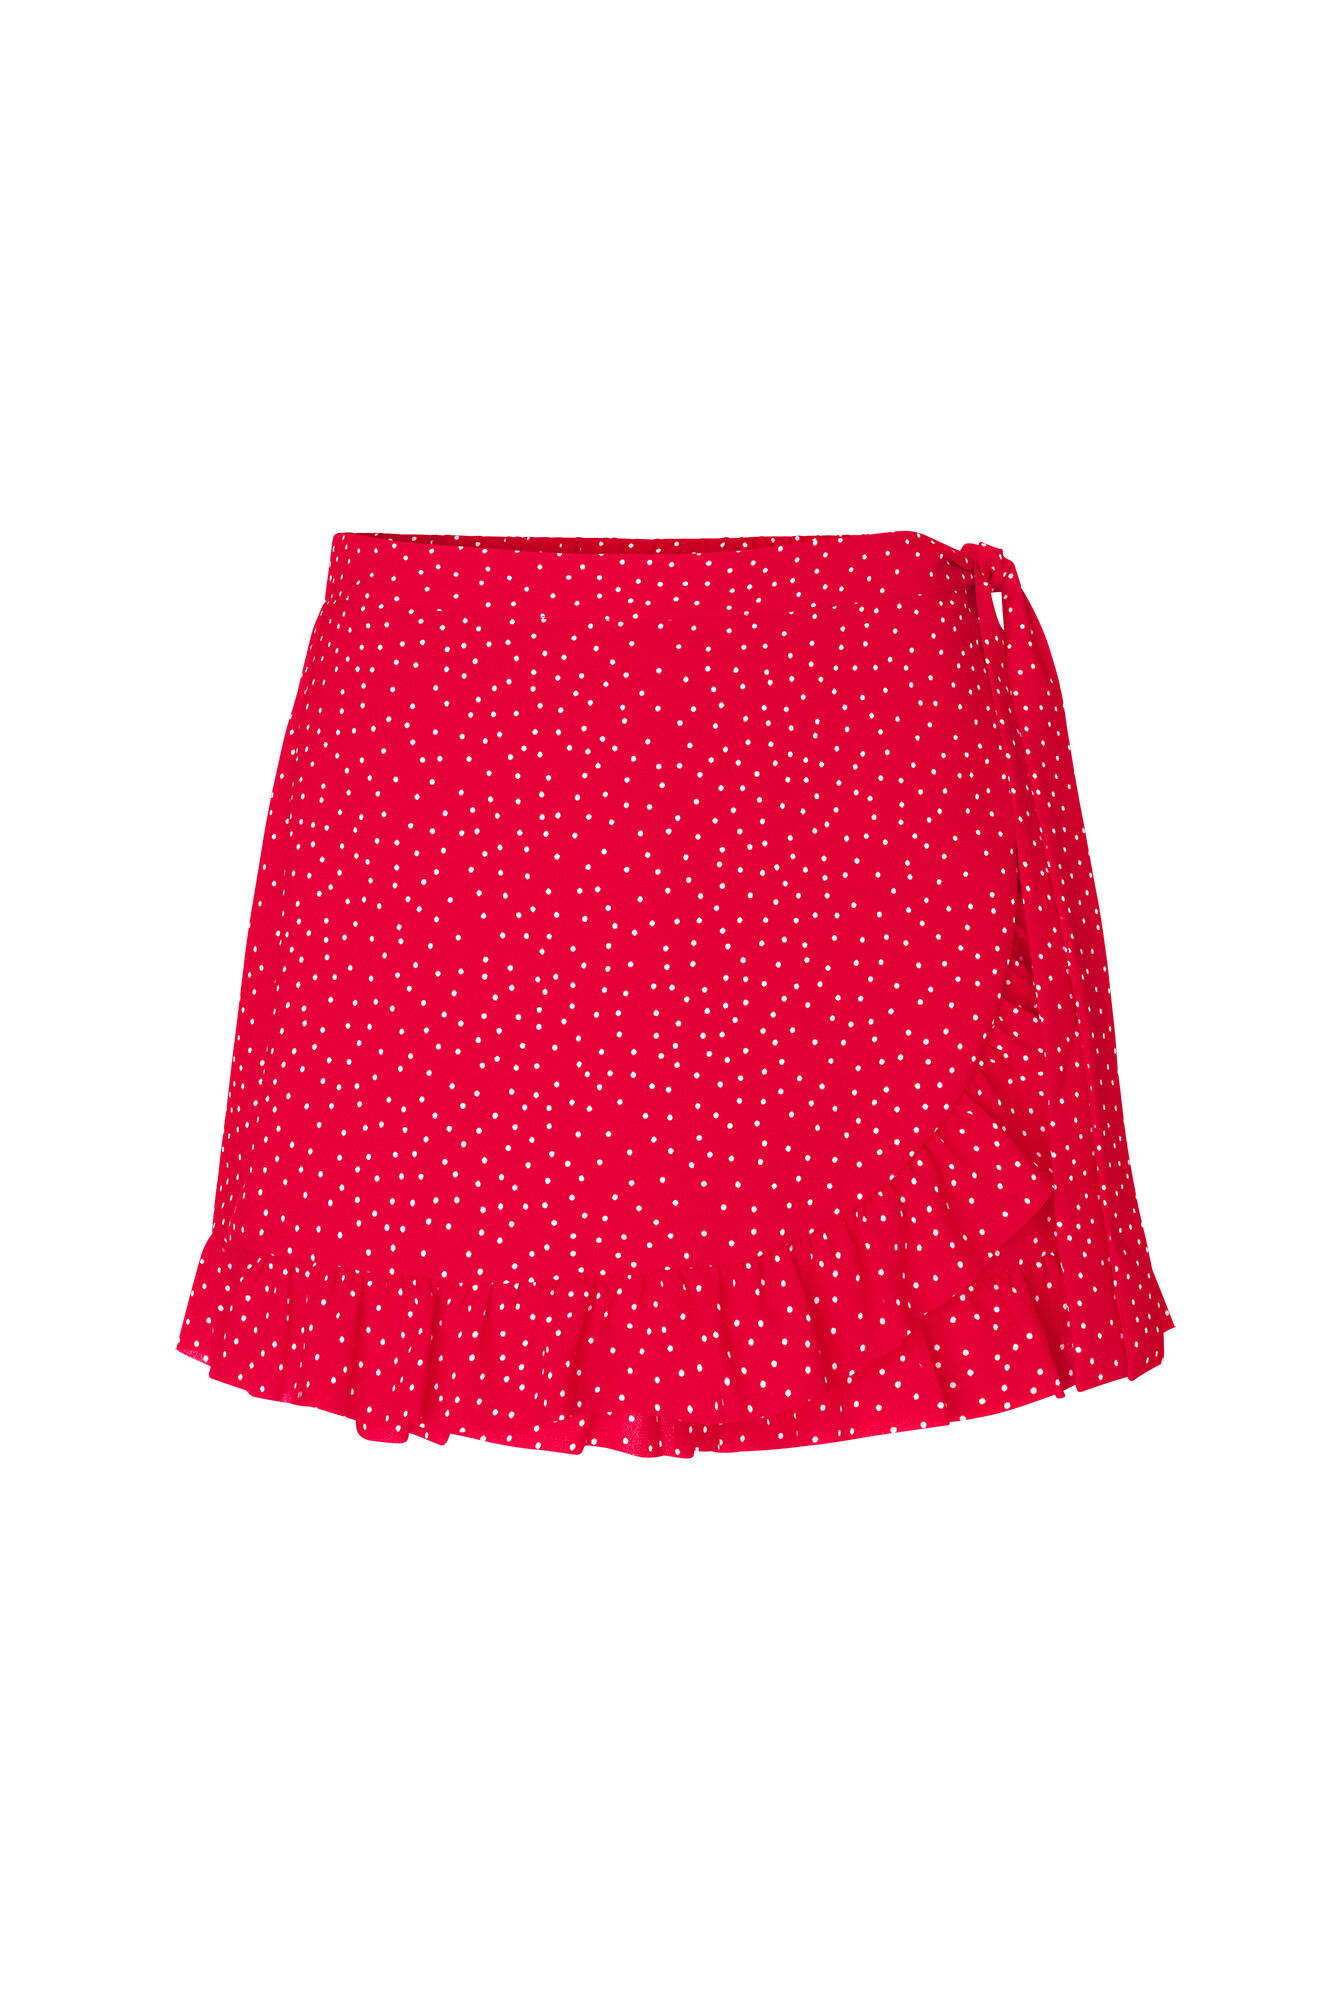 ENCHILI SHORTS AOP 6444, LATIN DOT AOP